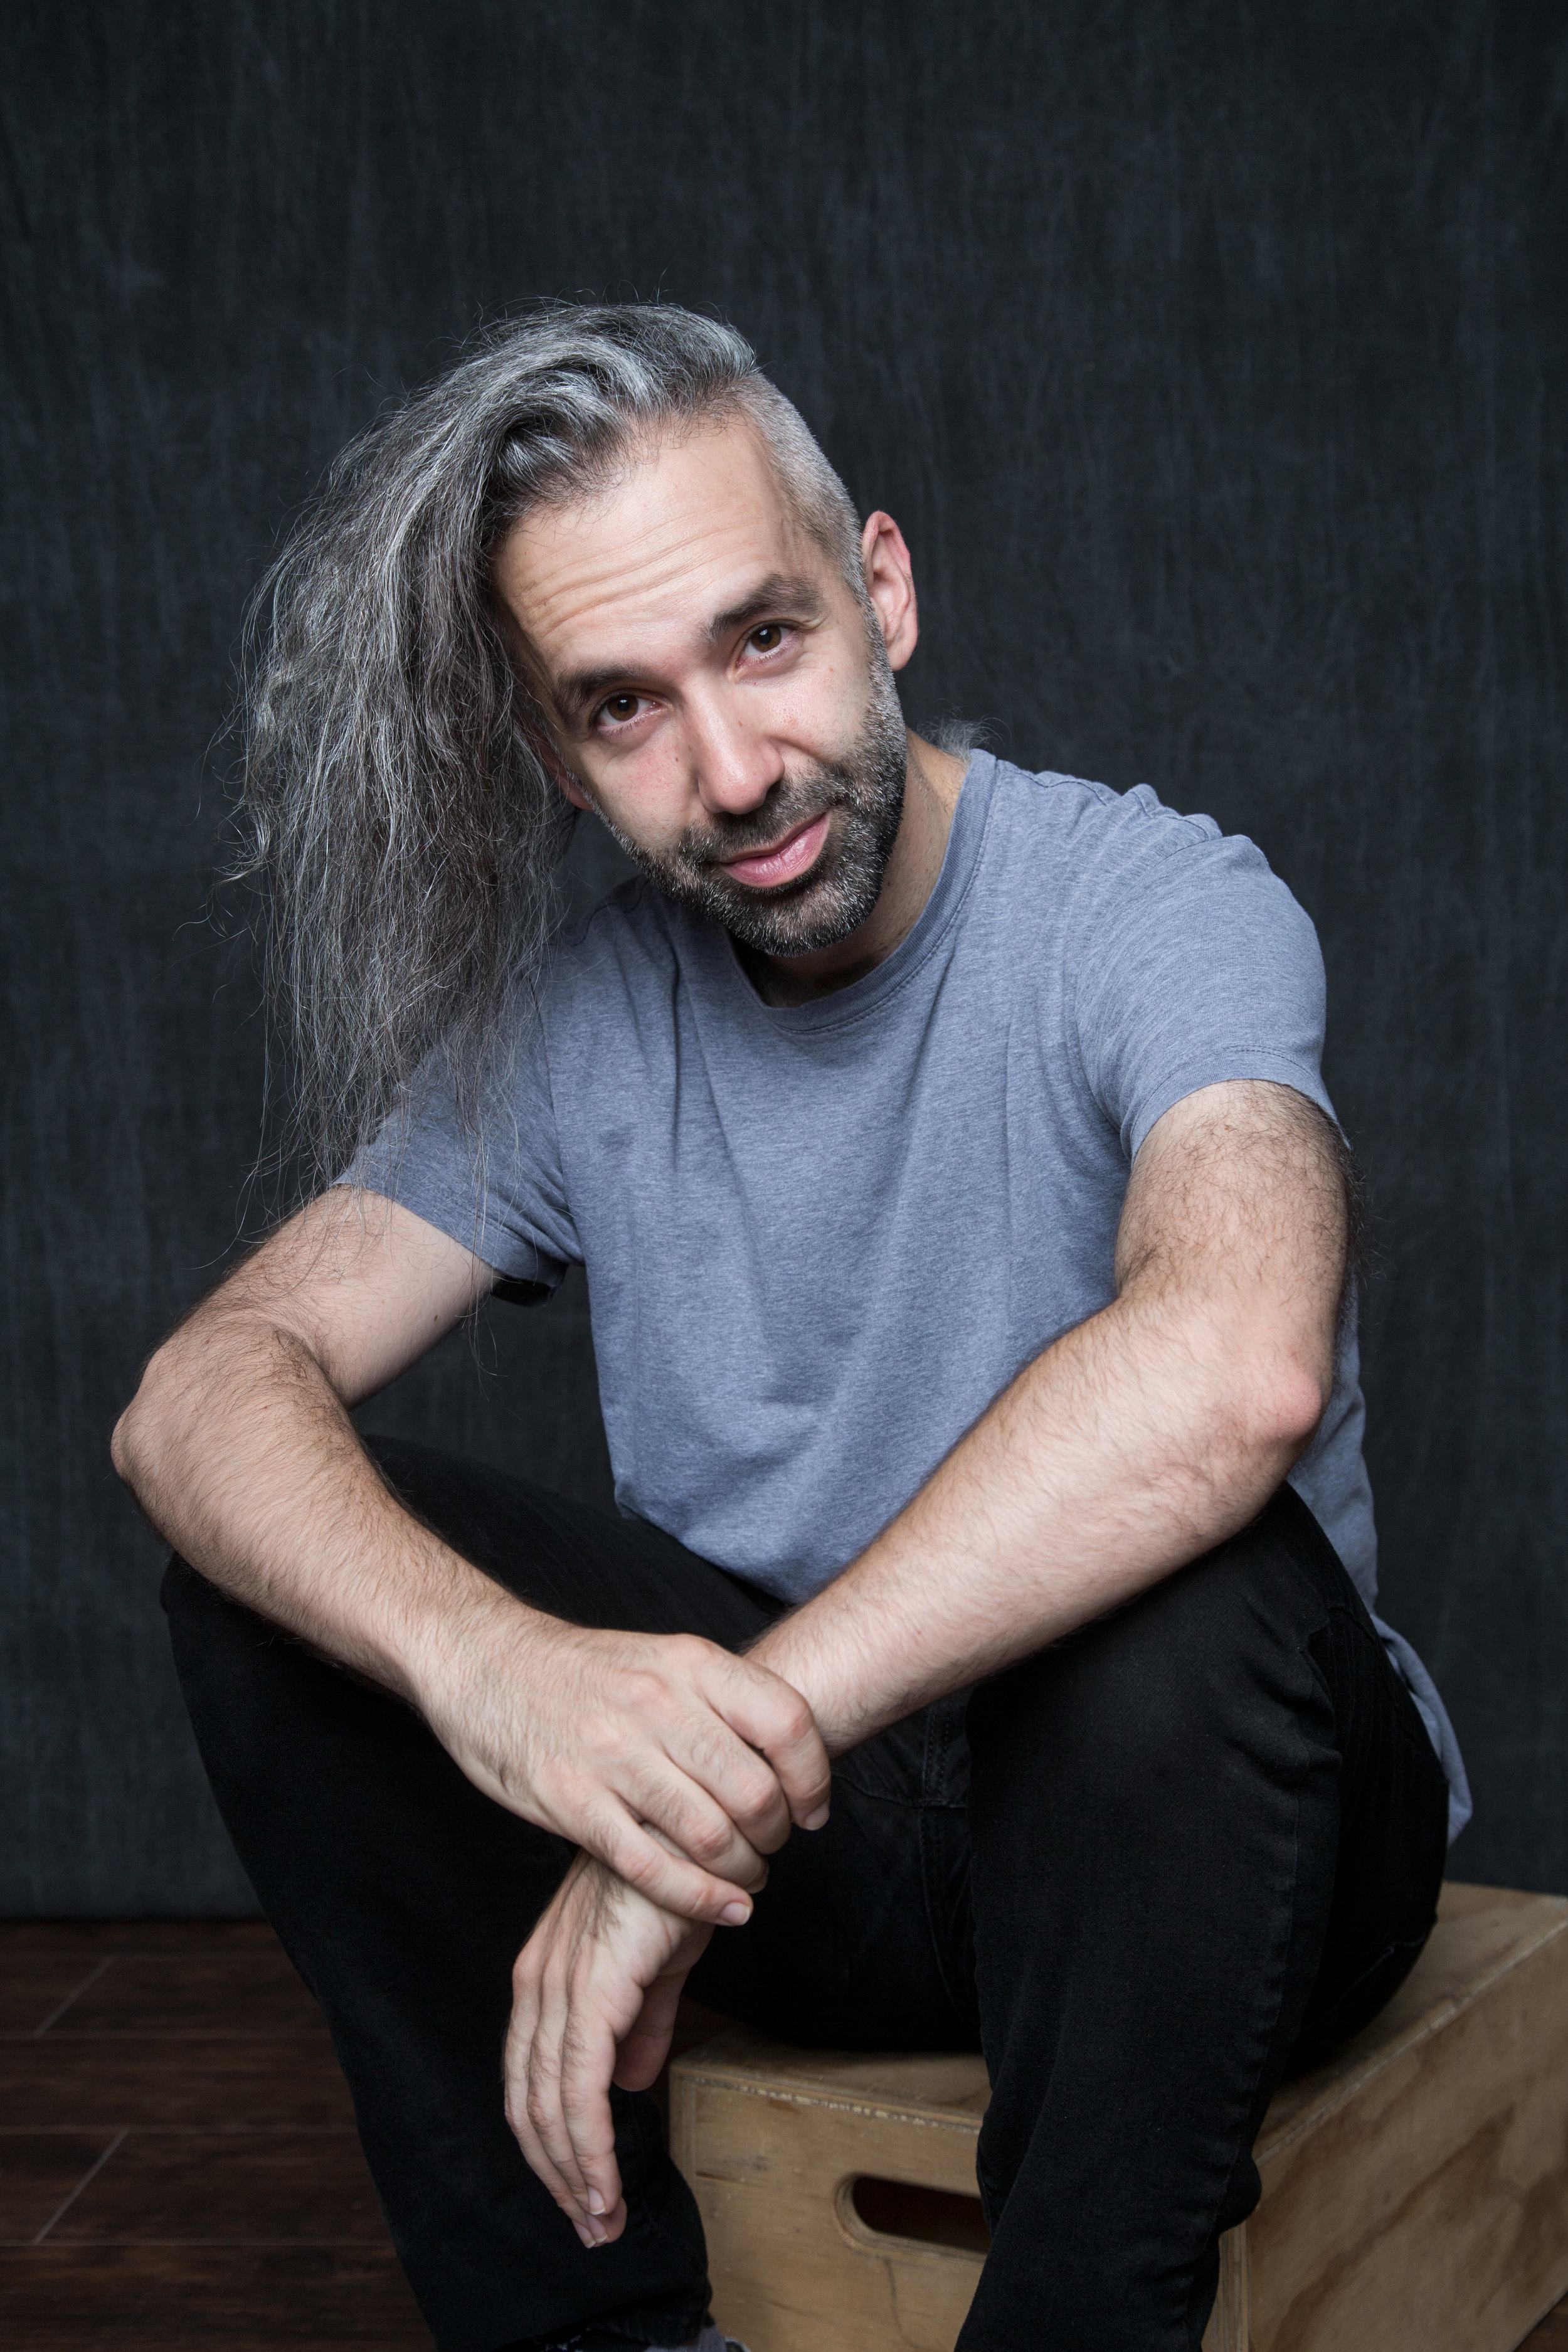 Andrew - Gray at:17IG: @andrewjnemrWhat does being gray mean to you?I count it as a marker of life fully lived. It makes me mature, substantive. I feel close to my dad, too (he started going gray early as well), and a little like Gandolf.